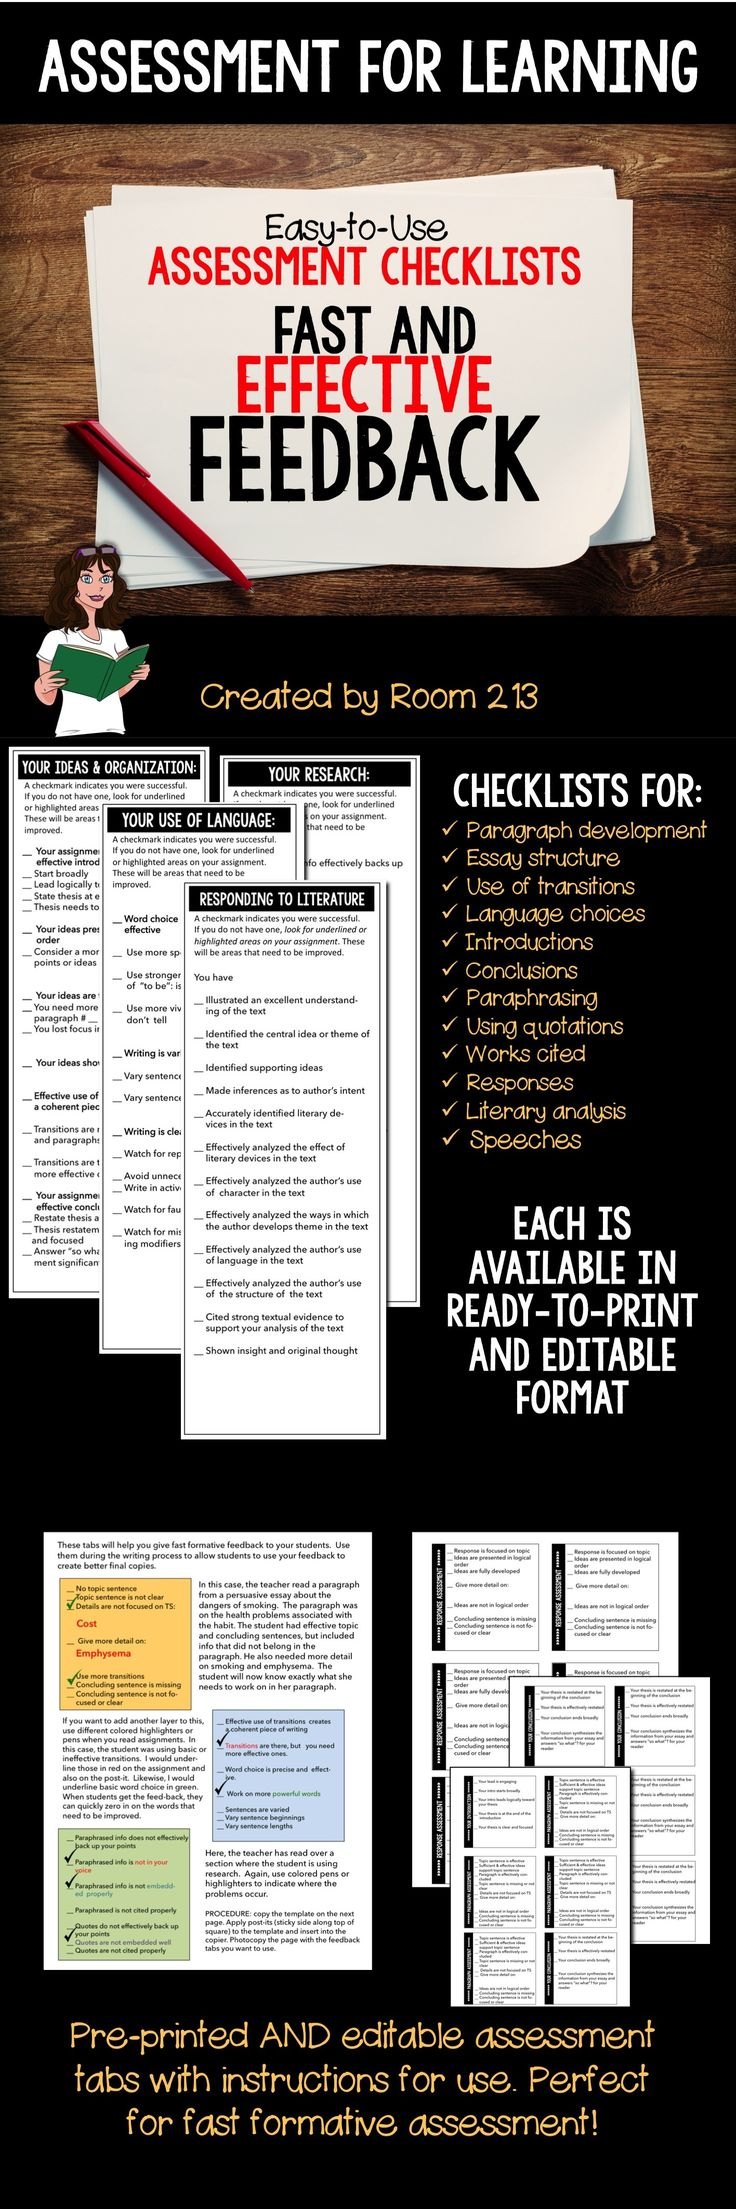 Fast effective feedback! You can give your students lots of feedback without burying yourself under paper!